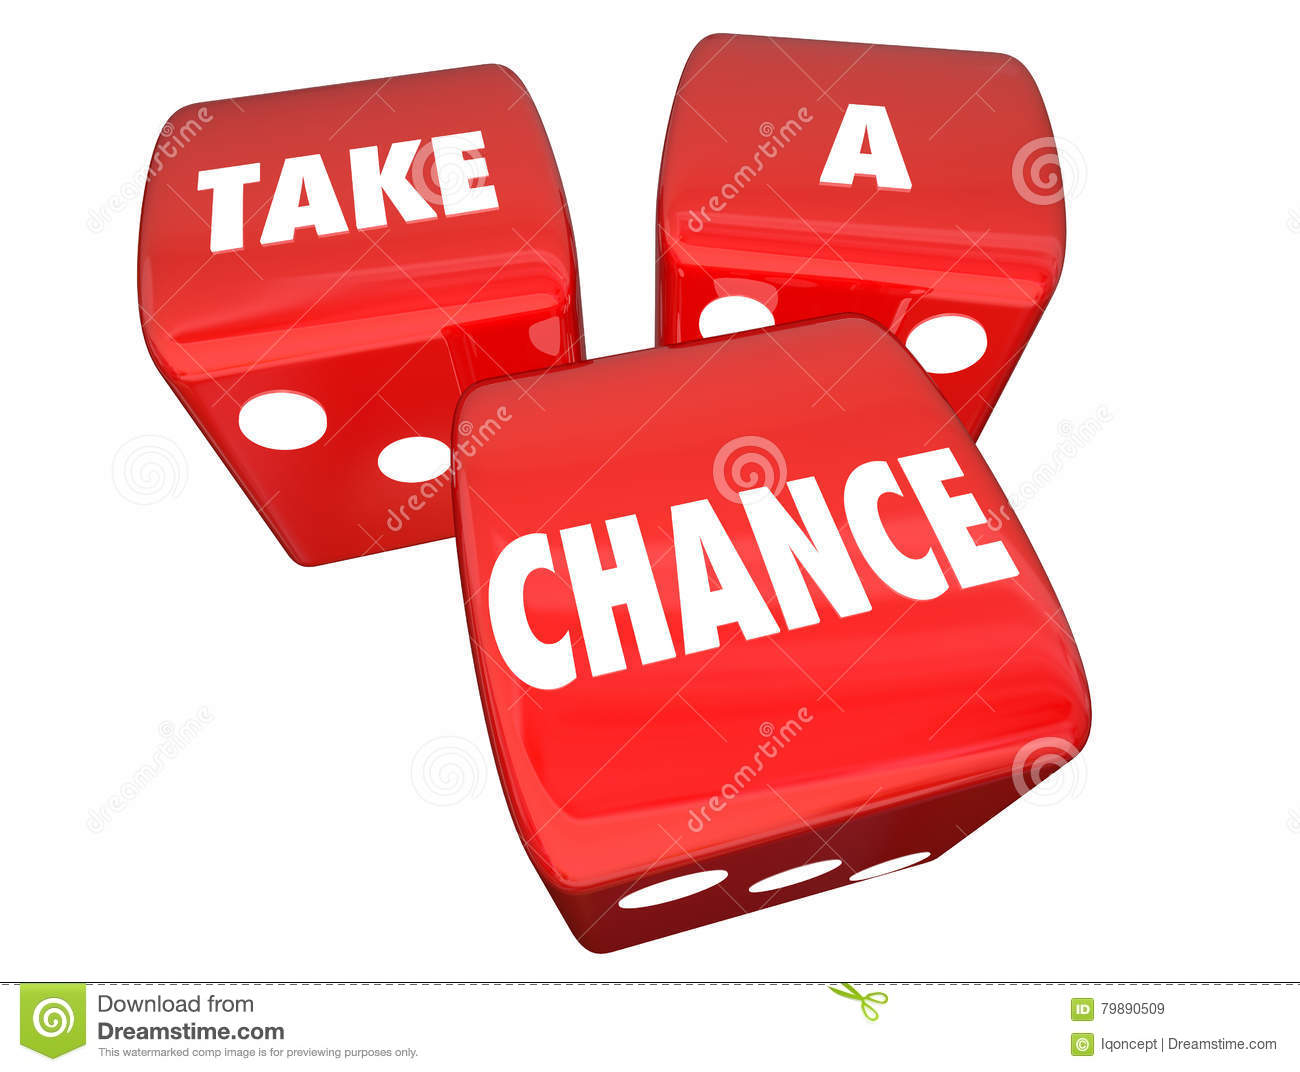 Take a Chance Three Red Dice Rolling